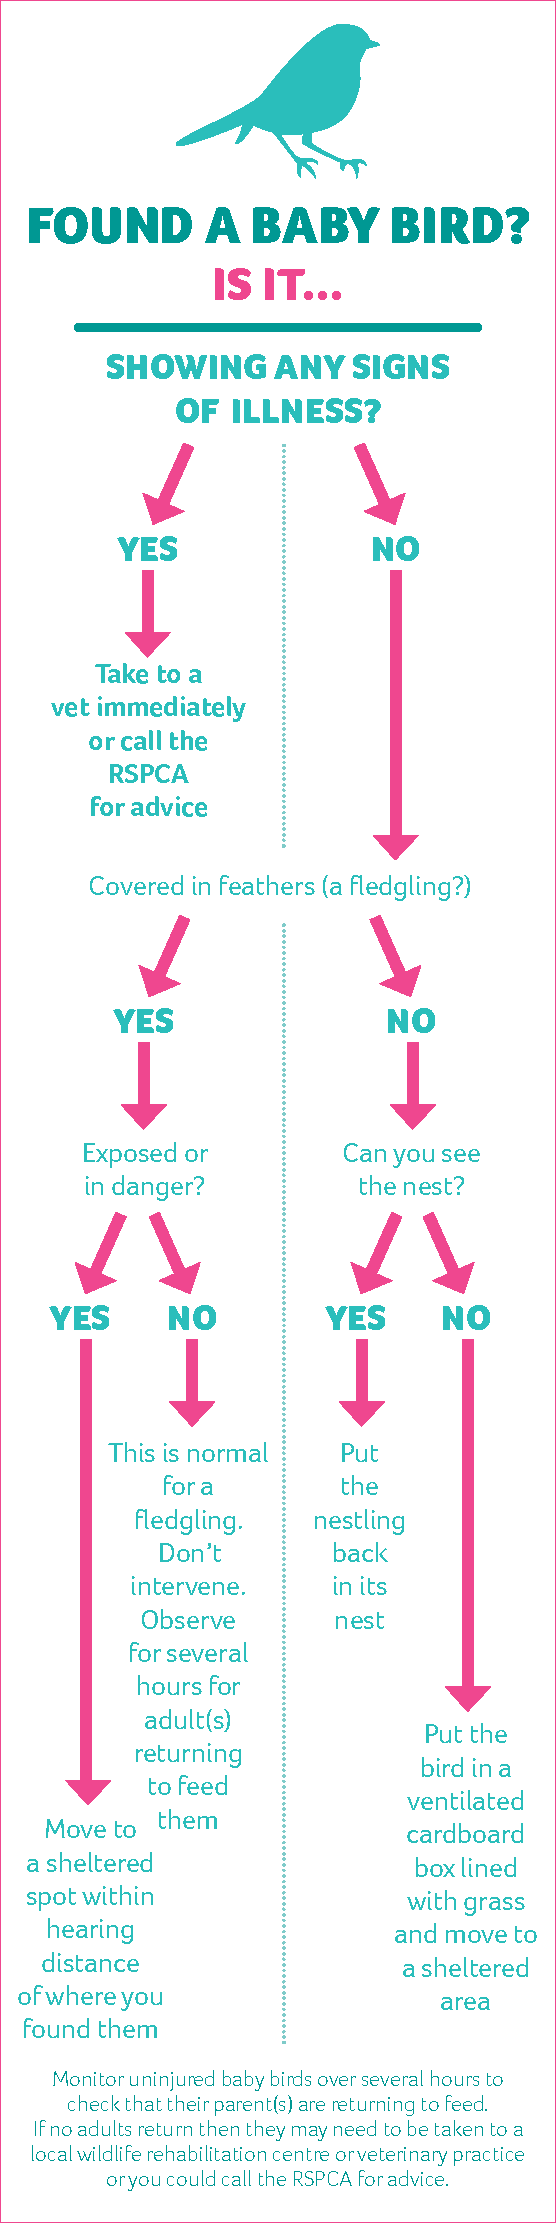 Infographic showing what to do if you find a baby bird